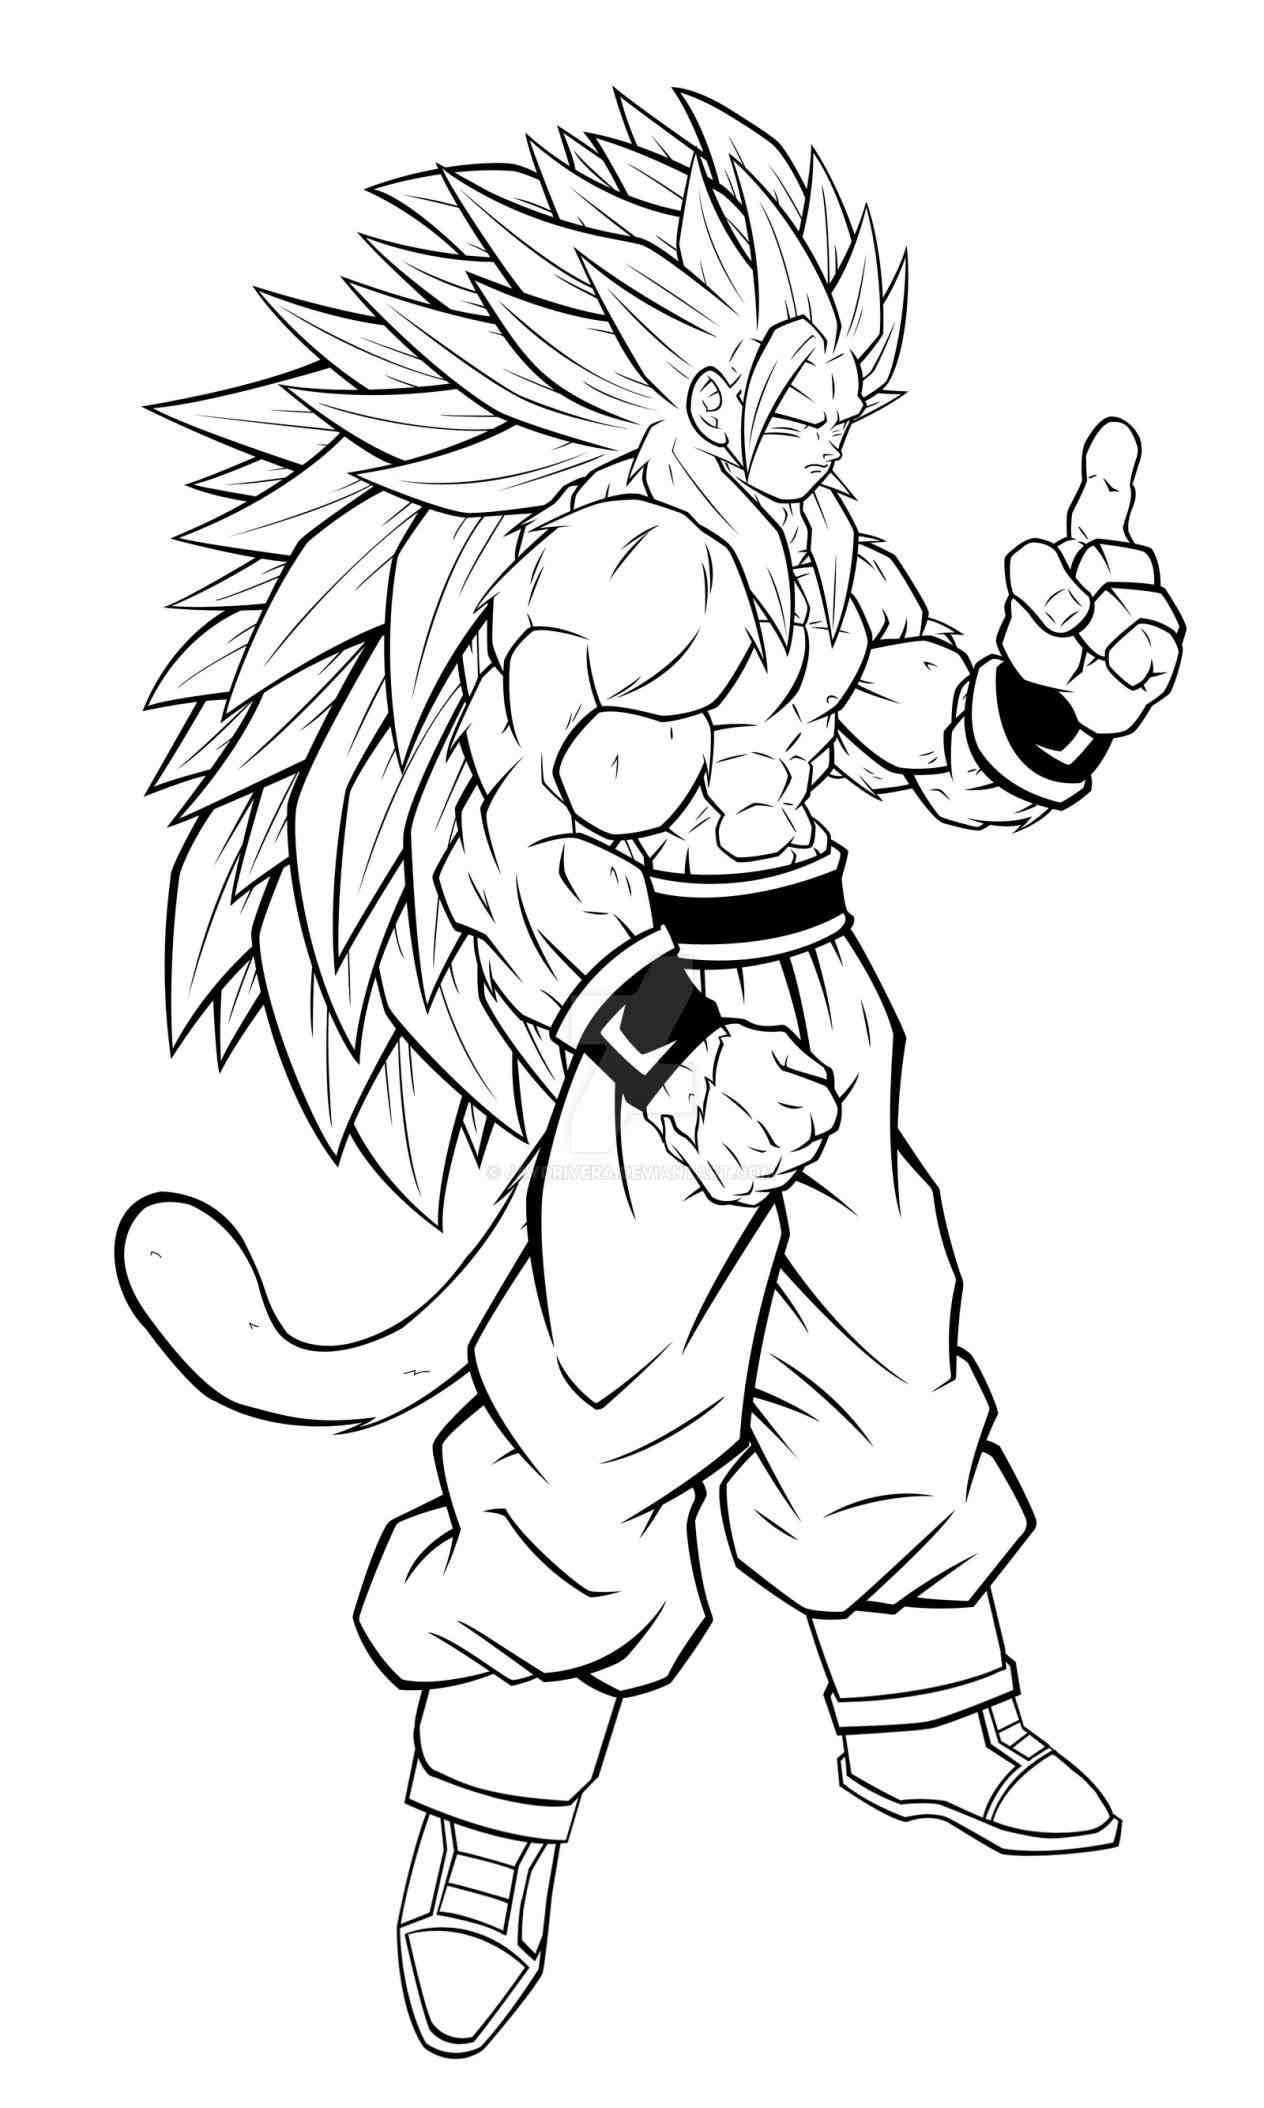 Dragon ball z coloring pages goku super saiyan 5 az for Dragon ball z goku coloring pages